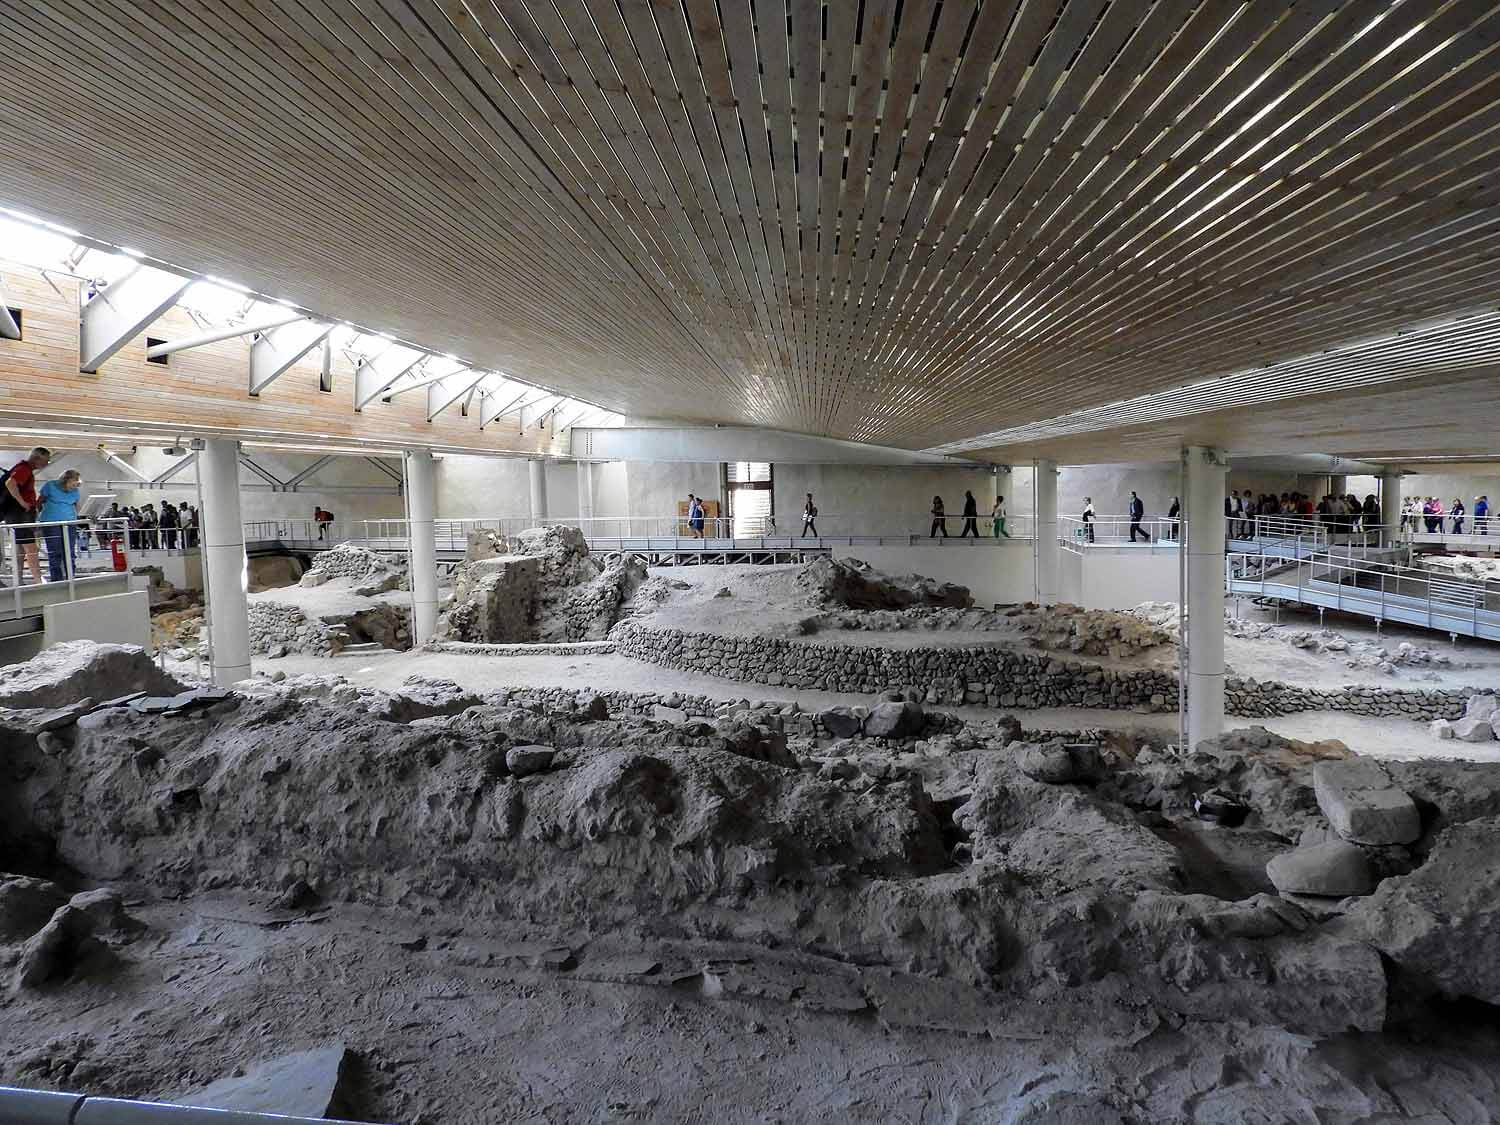 greece-santorini-akrotiri-ruins-excavation-musuem-archeology-indoor.jpg